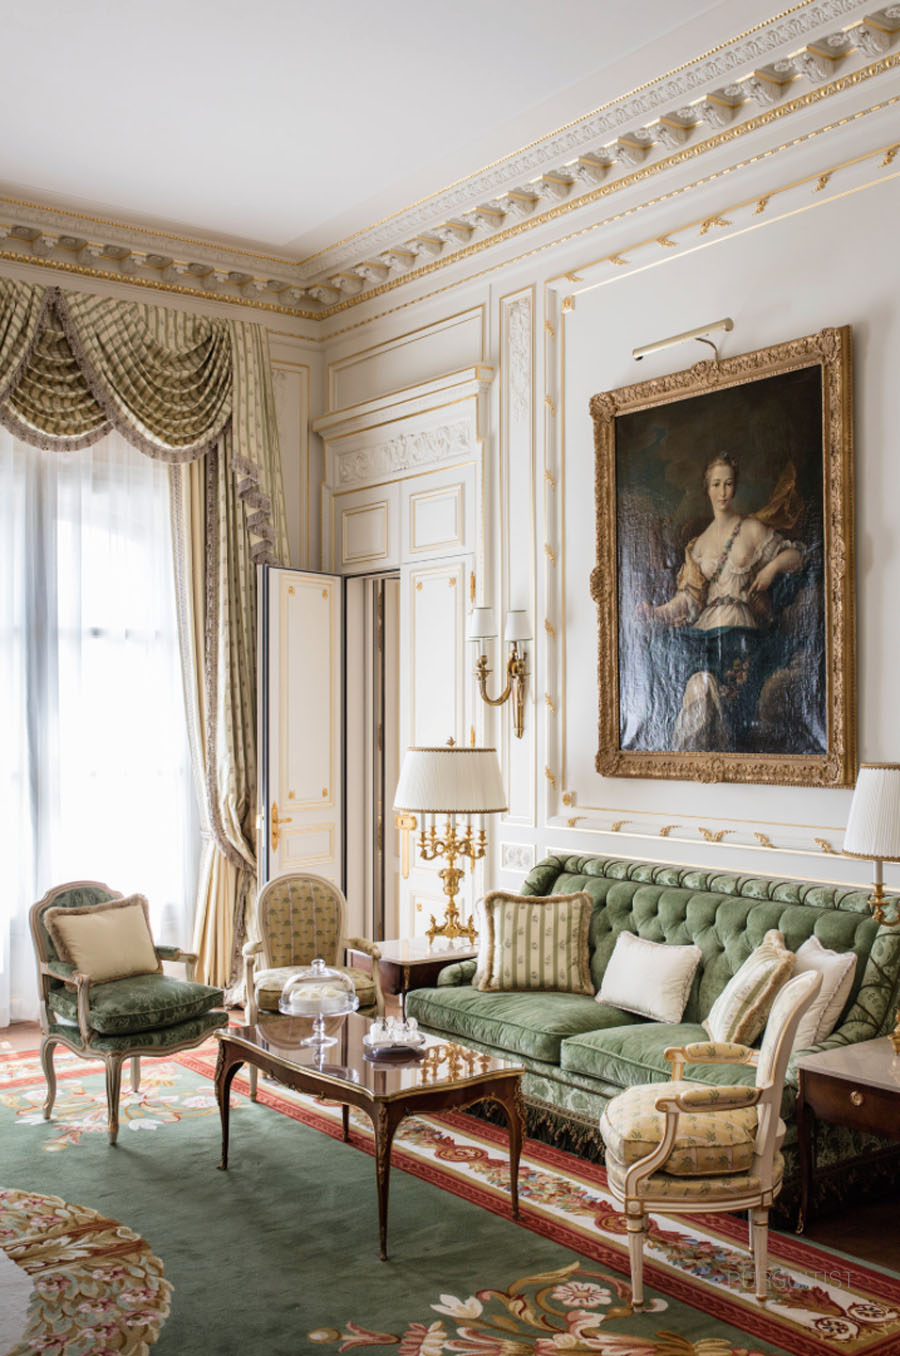 Paris Ritz7